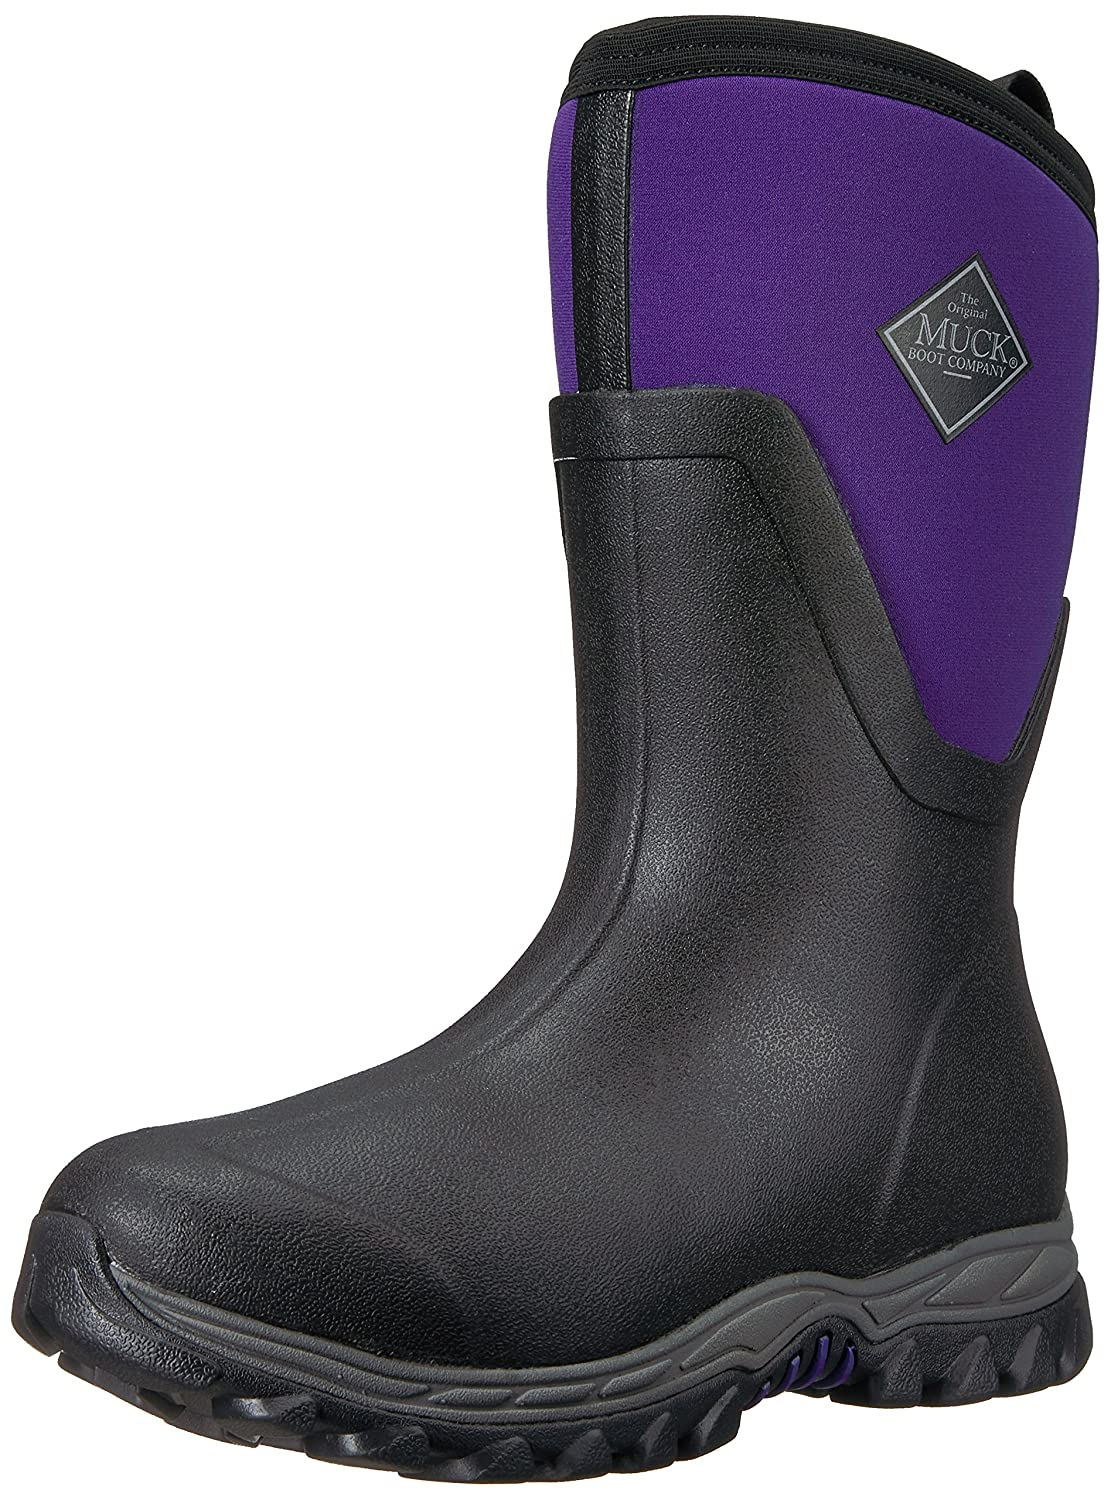 Black Parachute Purple Muck Boot Women's Artic Sport II Mid Winter Boot